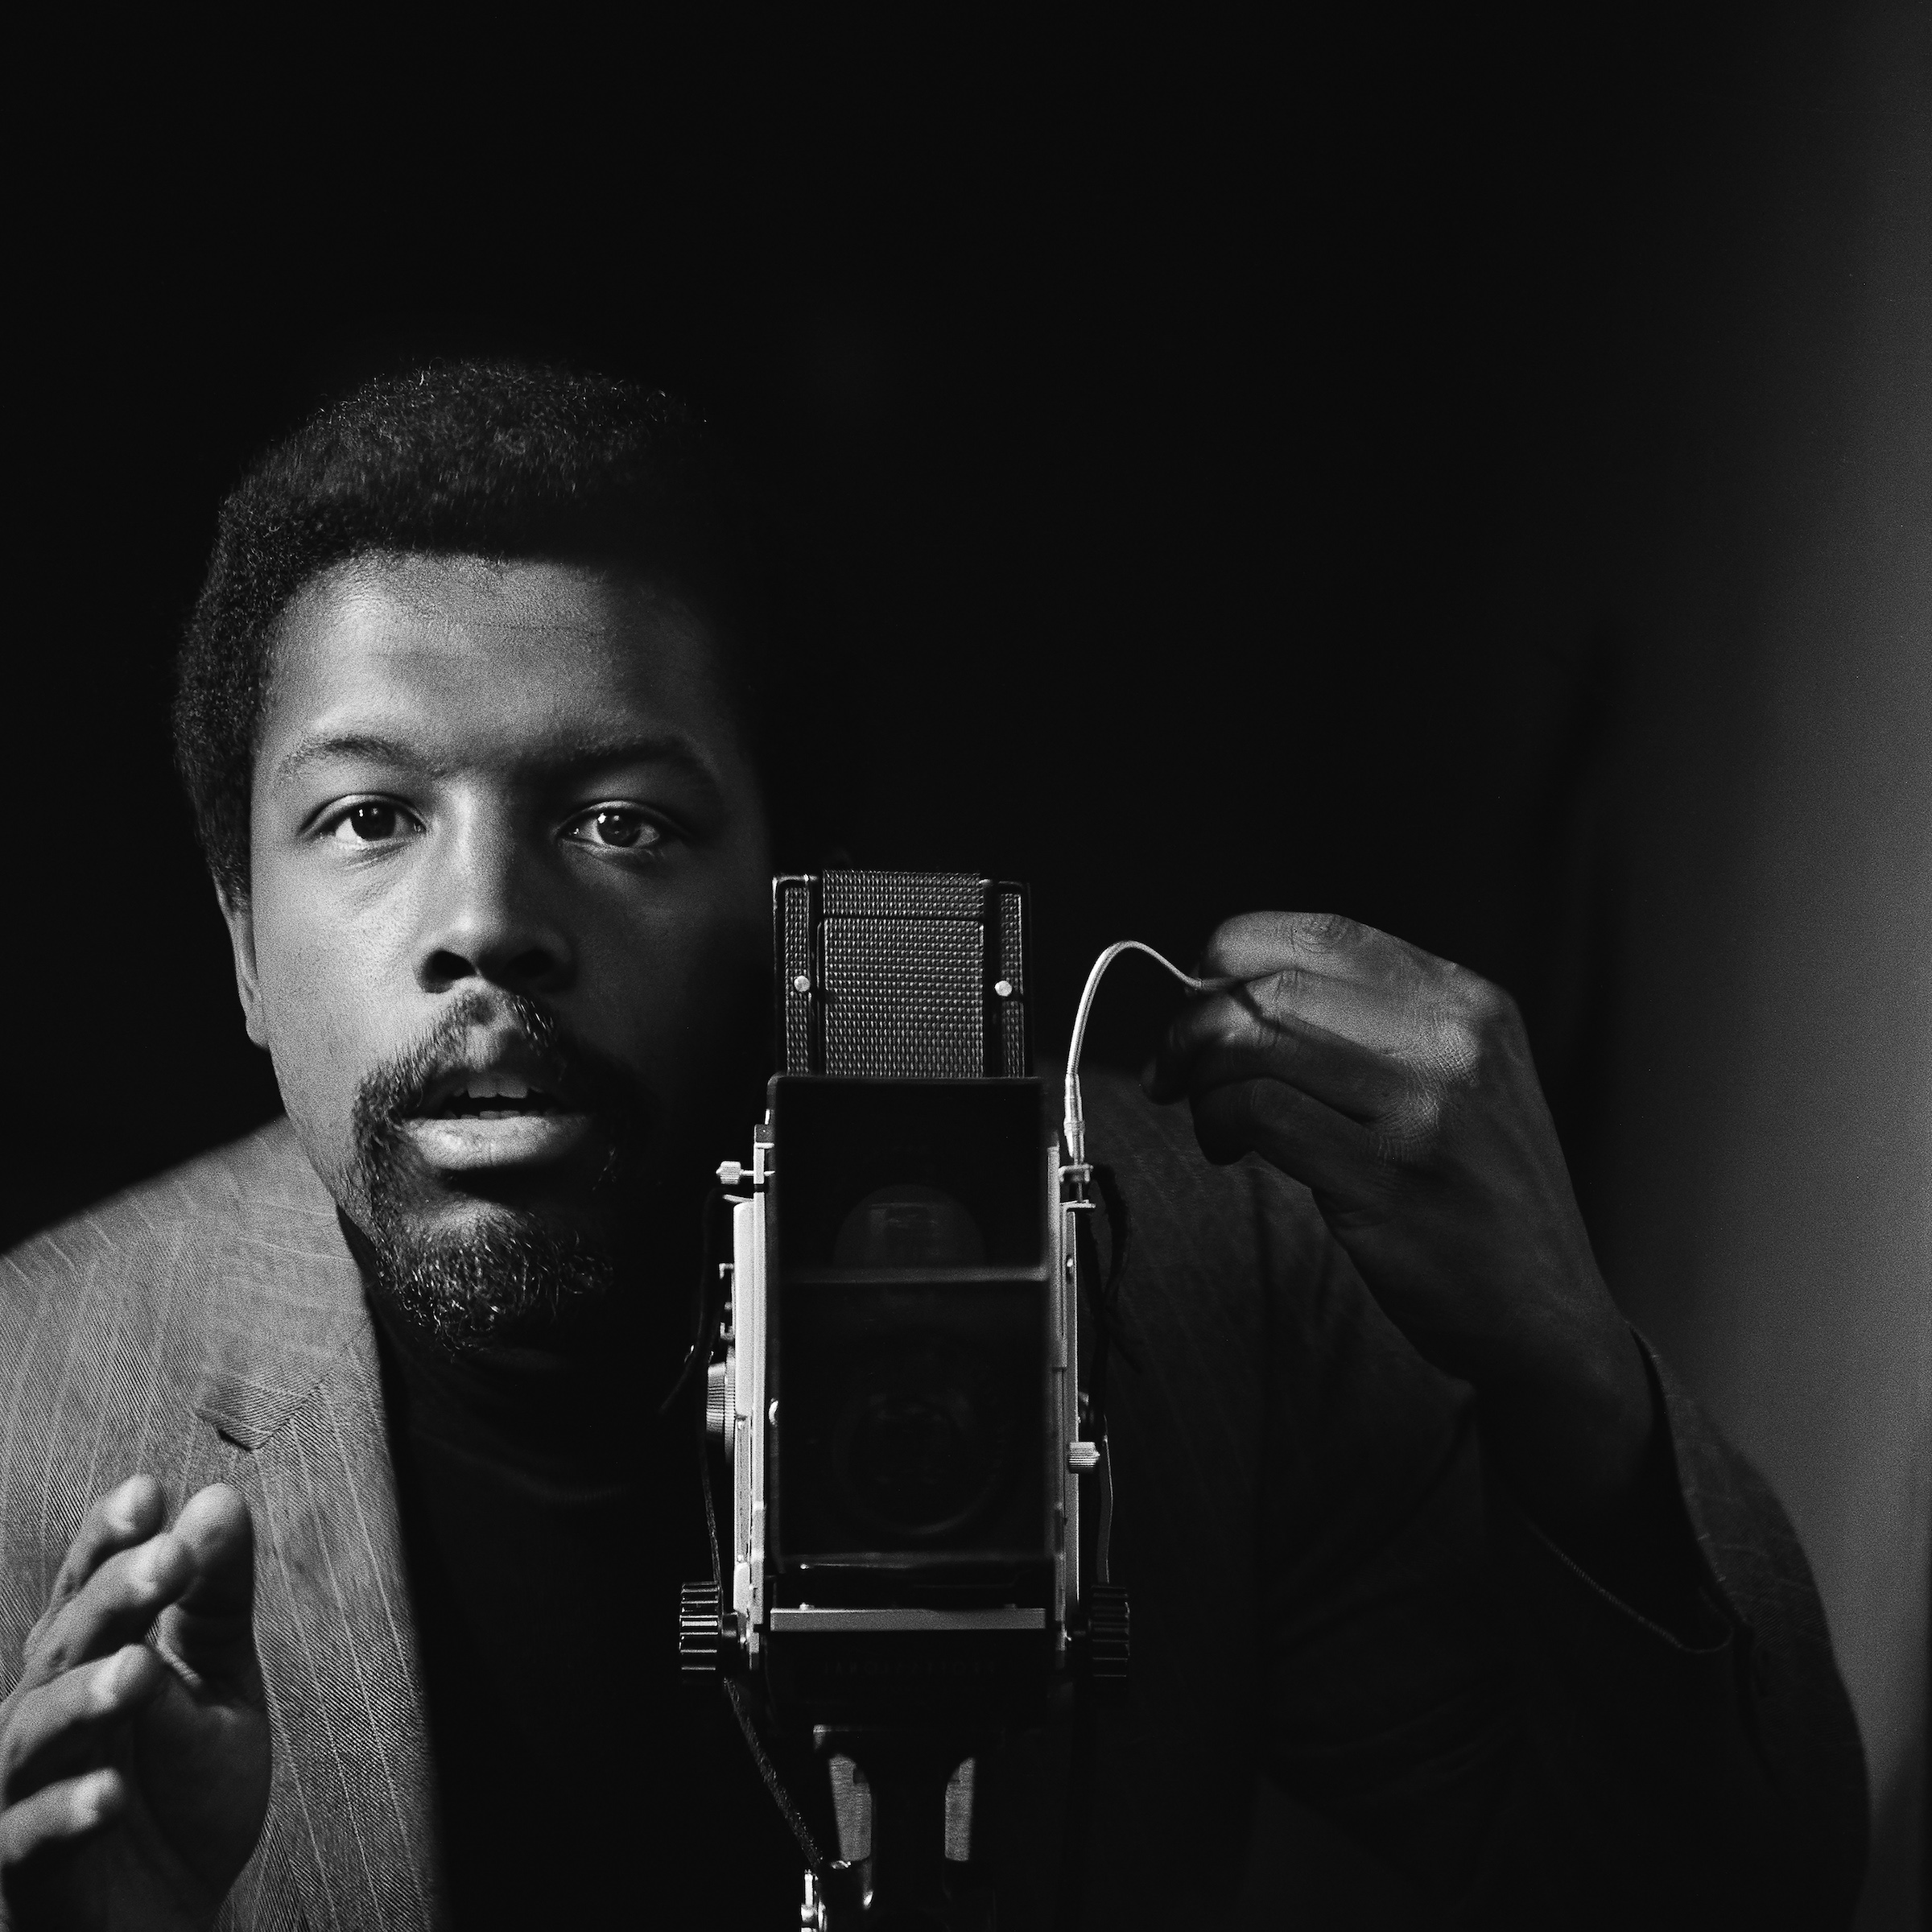 Kwame Brathwaite. Self-portrait, African Jazz-Art Society & Studios (AJASS), Harlem, ca. 1964. Courtesy of the artist and Philip Martin Gallery, Los Angeles.